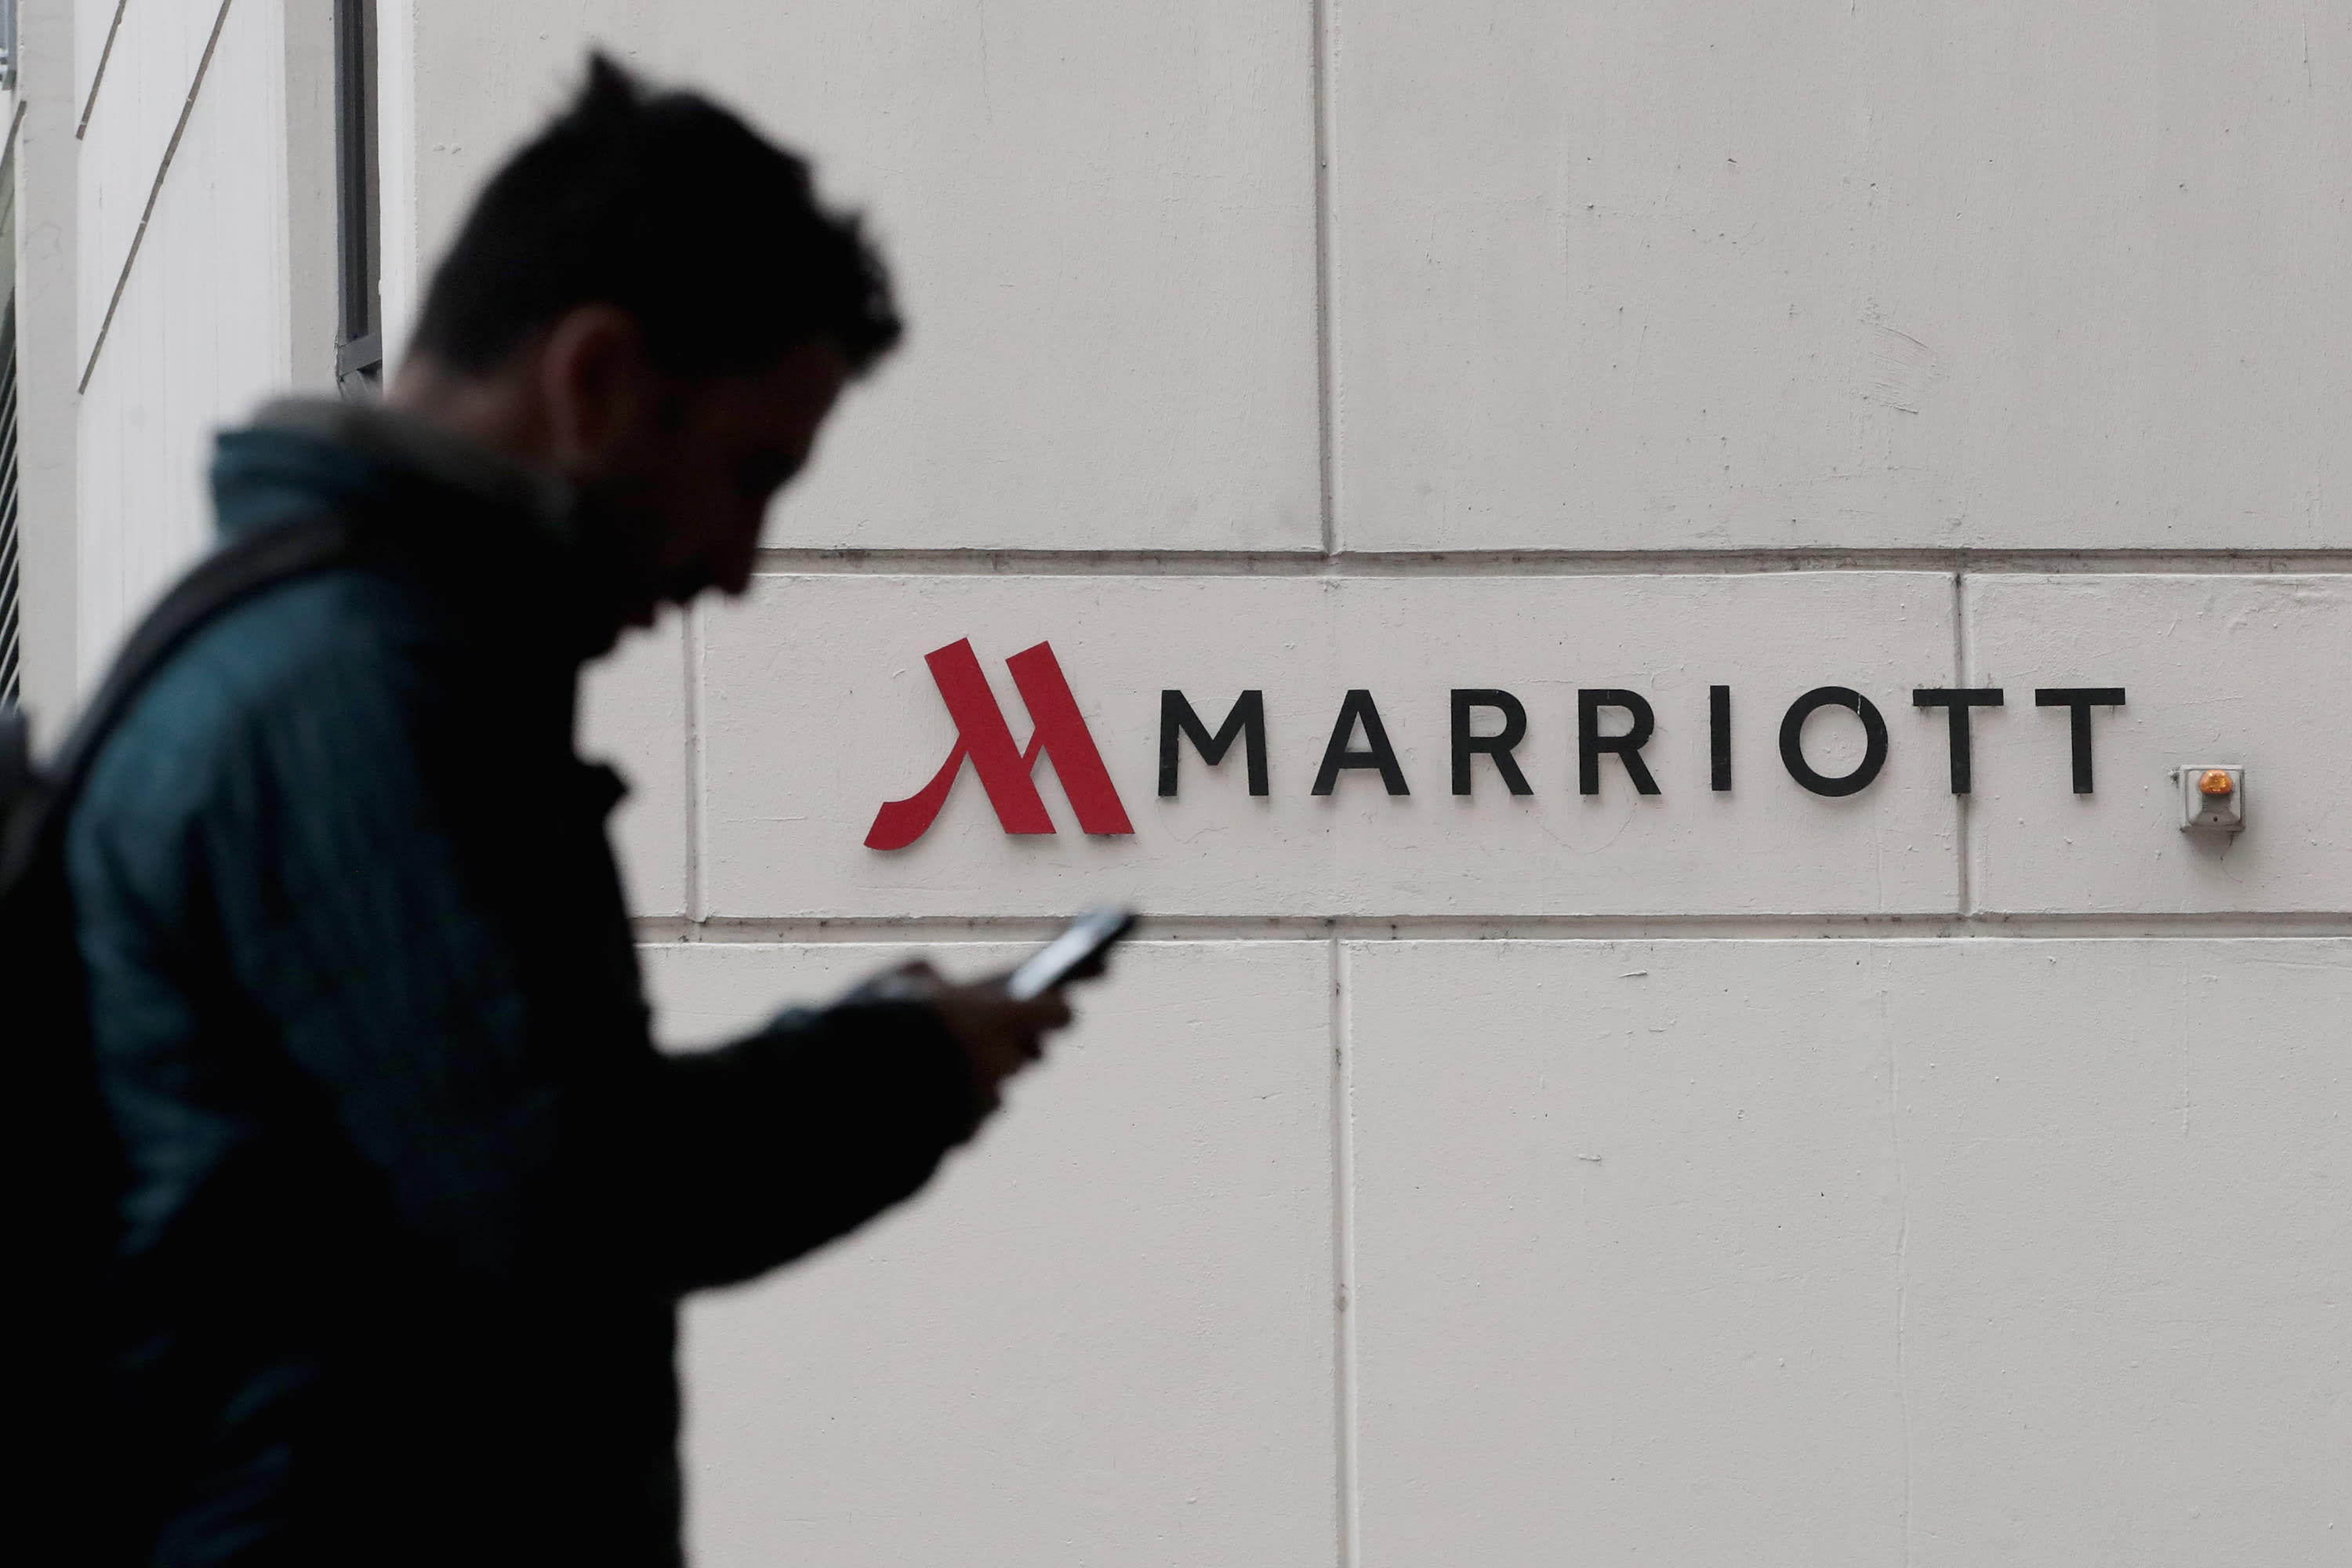 Marriott built its own 'Airbnb' before coronavirus crashed business travel. Did it help?